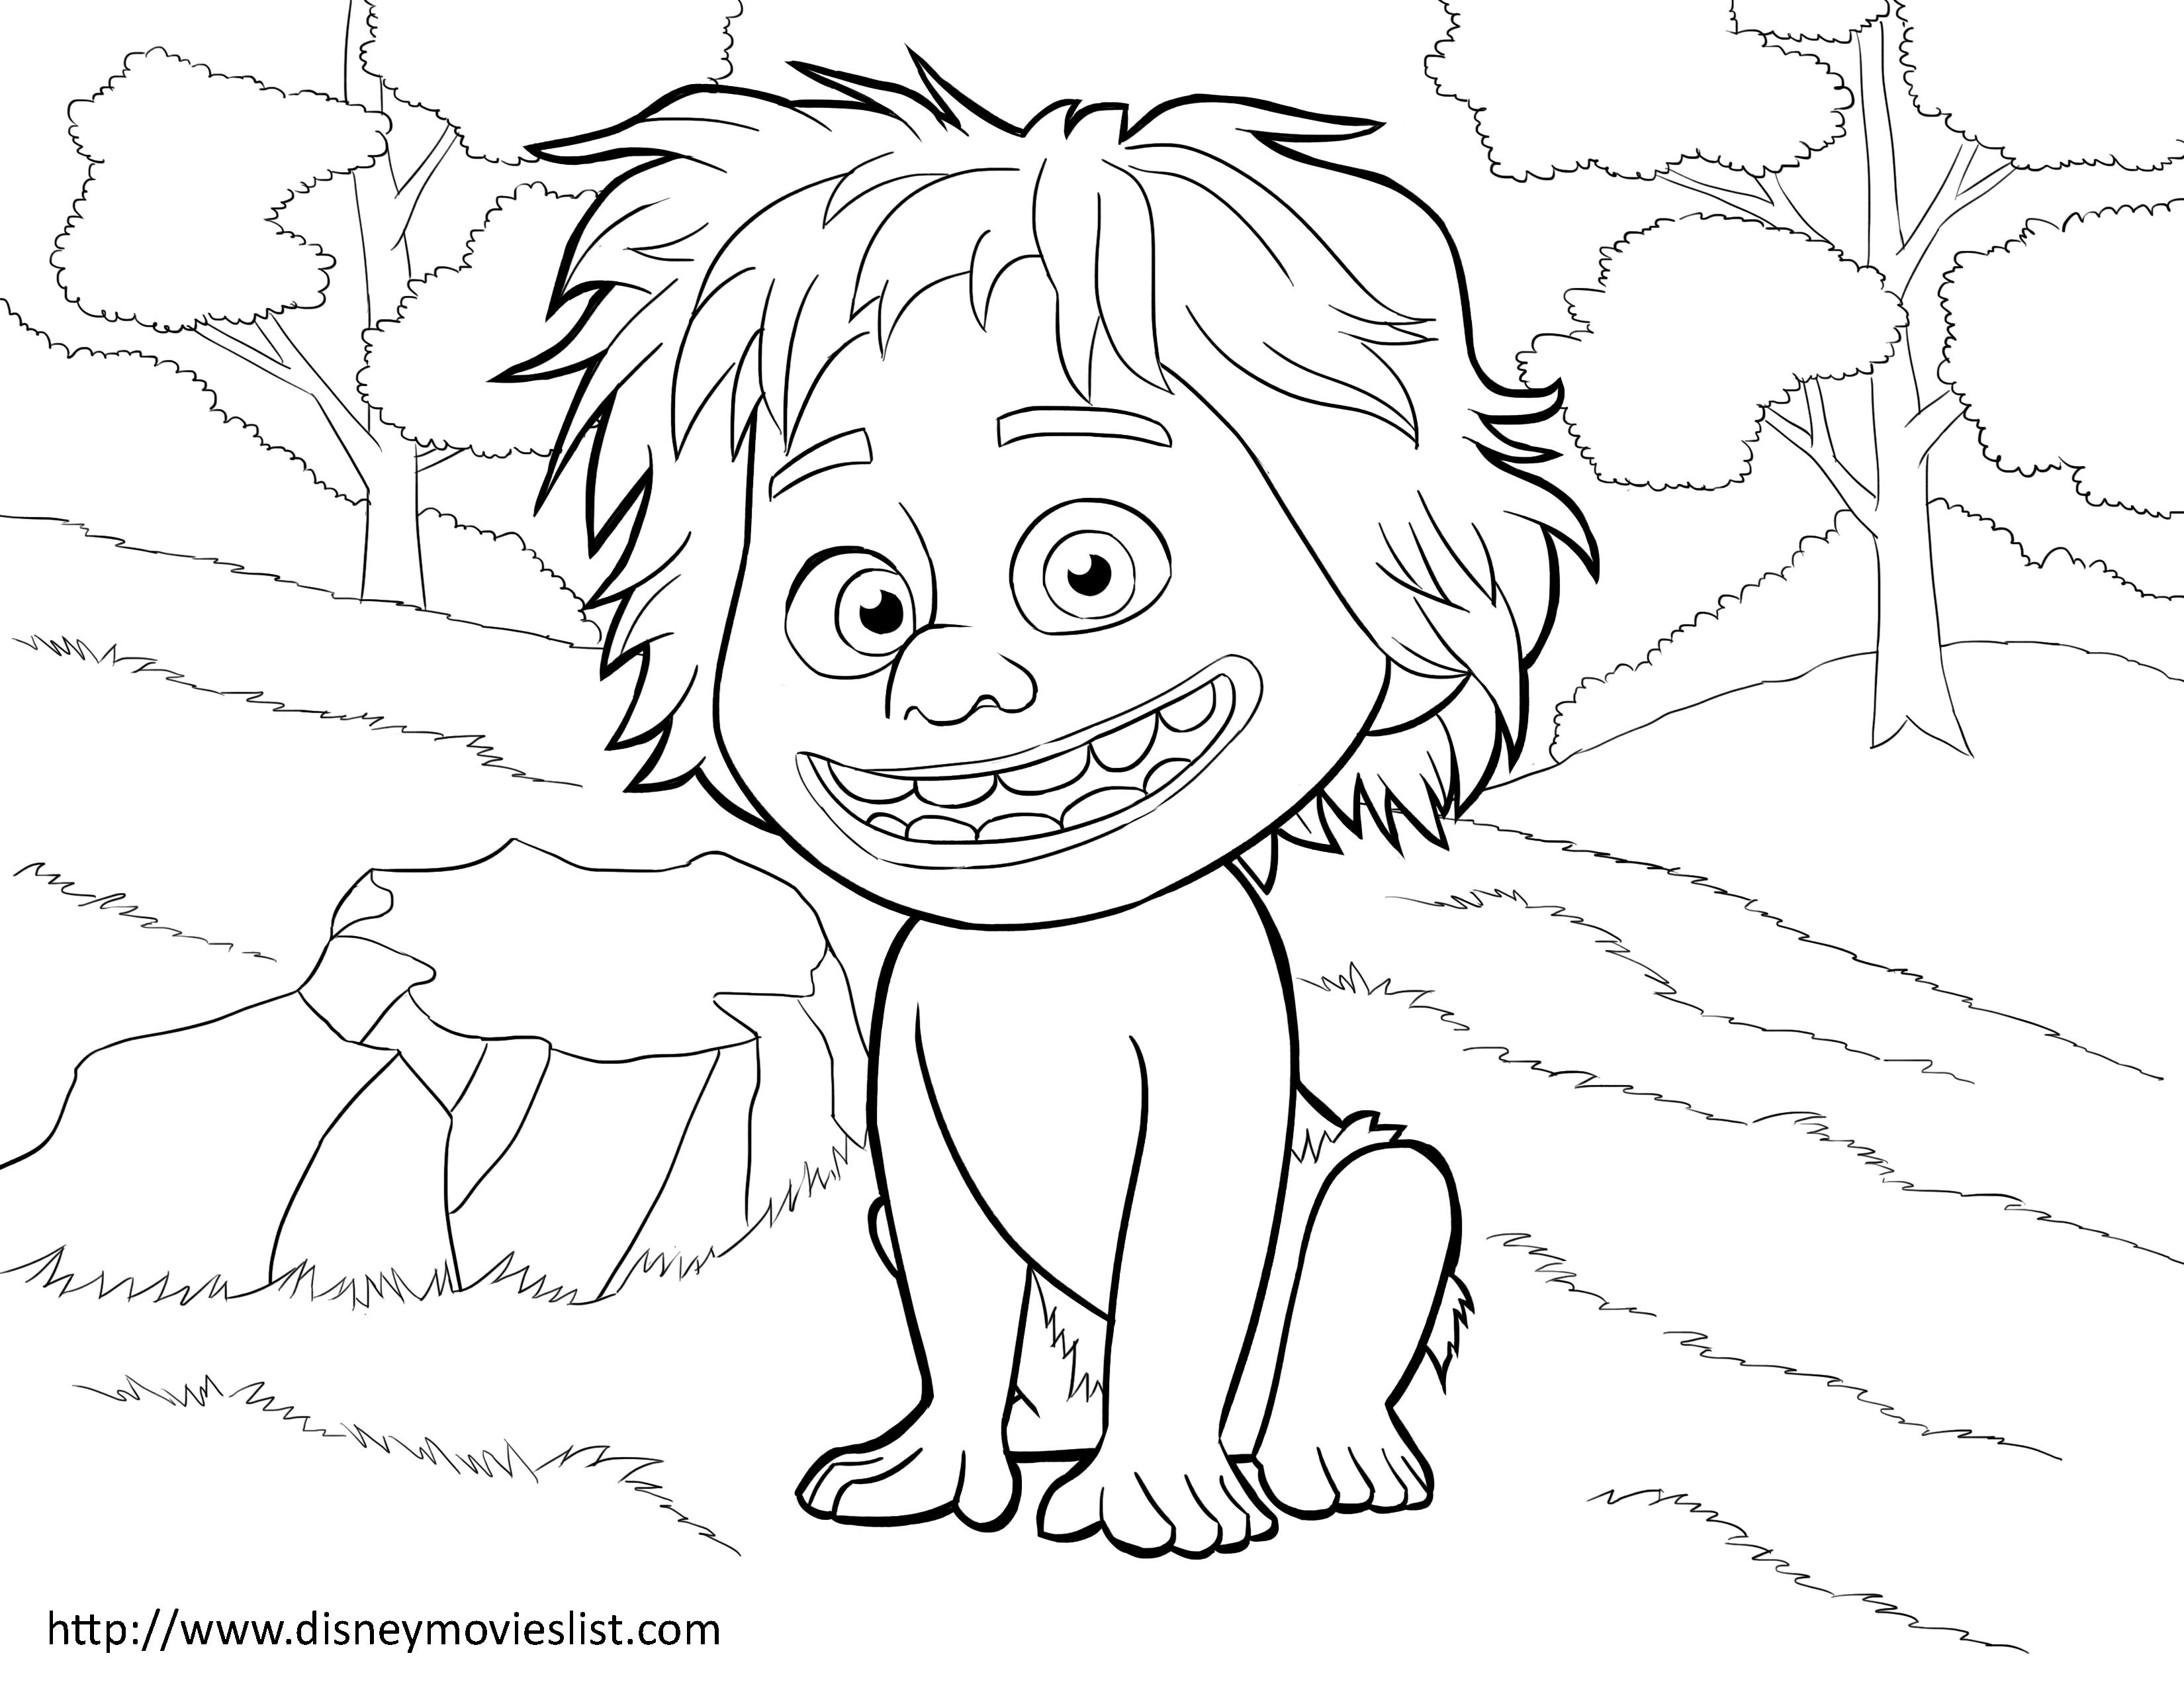 Disneys The Good Dinosaur Spot Coloring Page